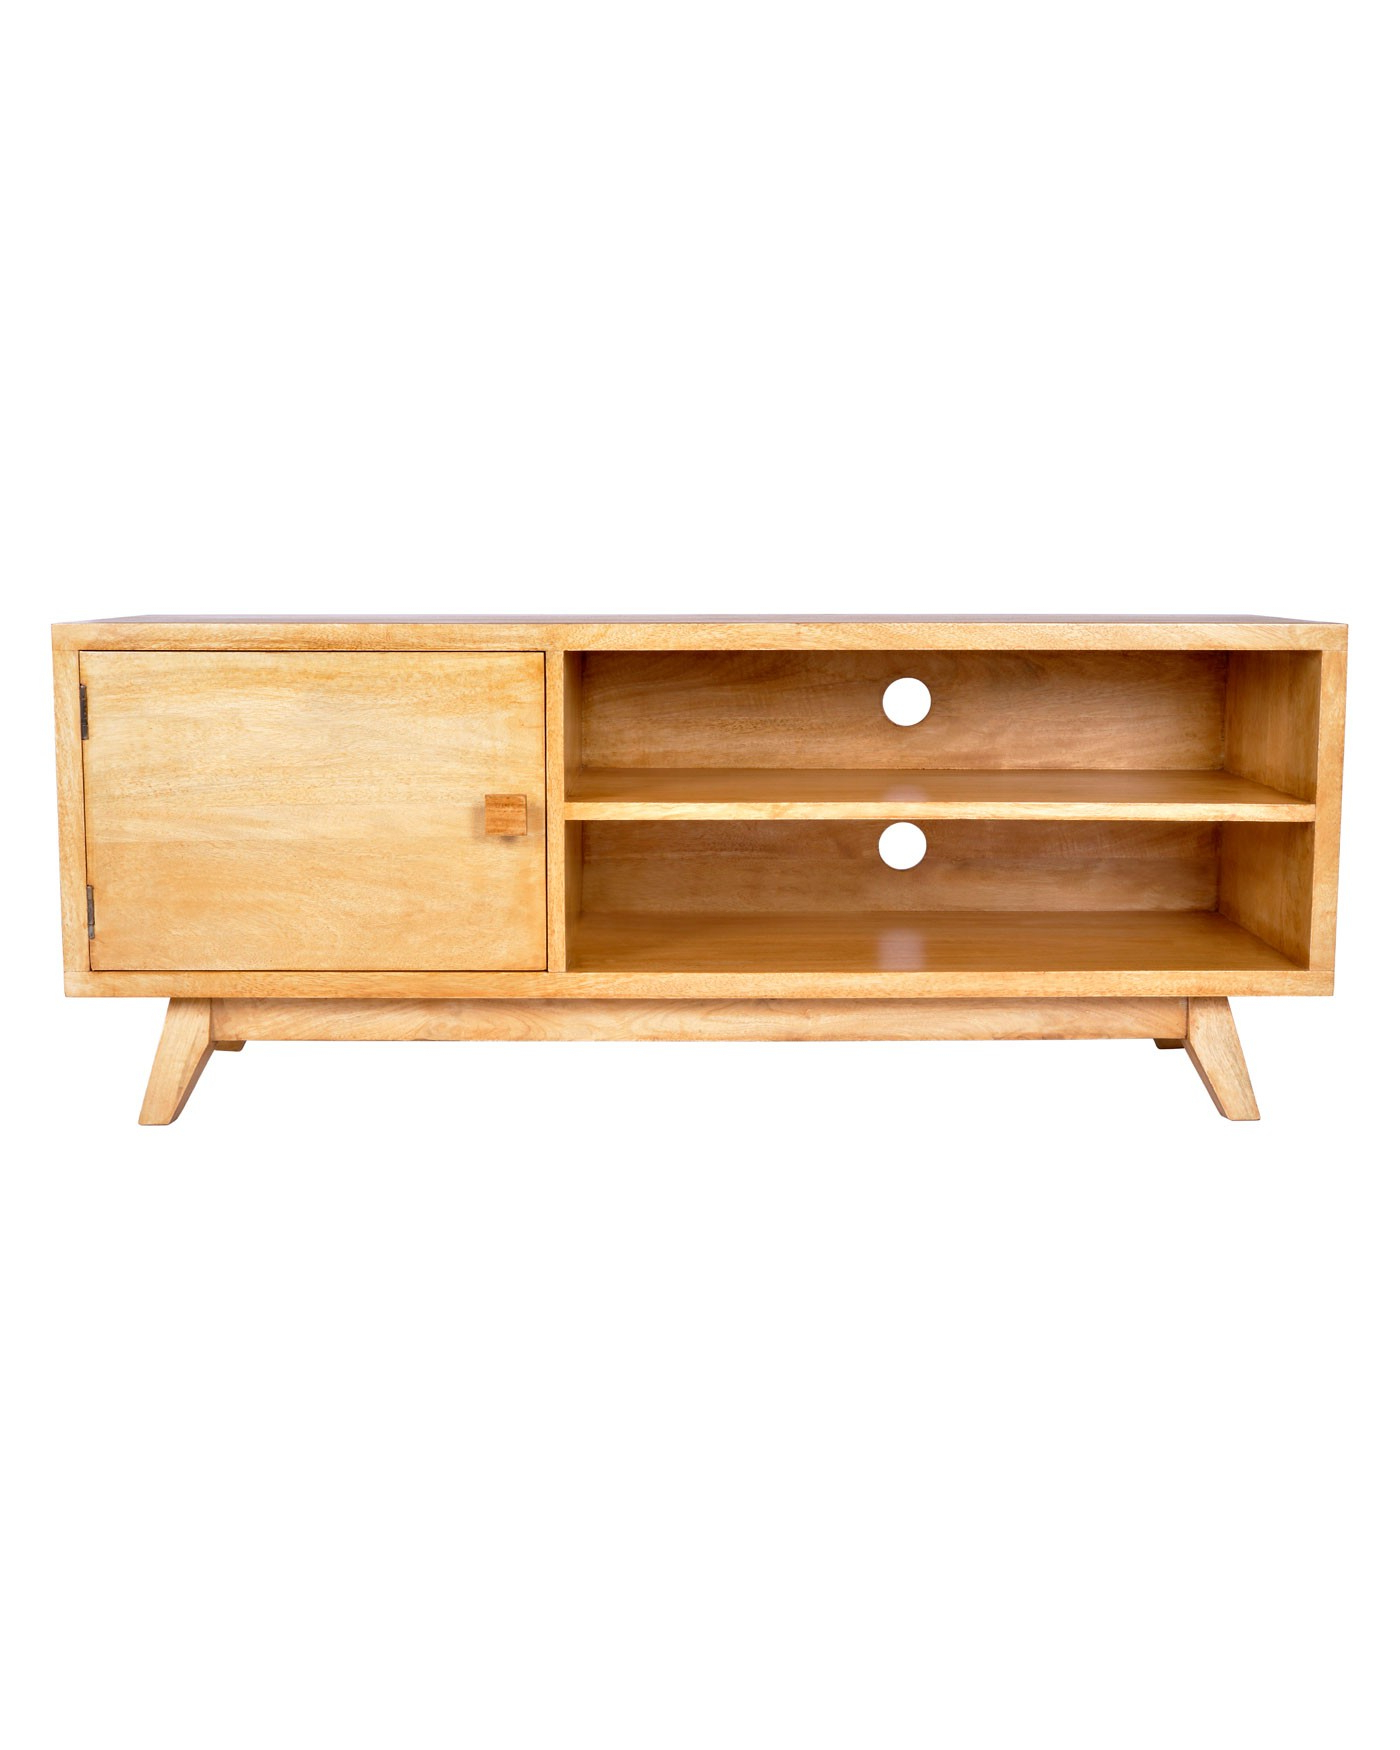 [%Retro Wooden Tv Stand With Shelf 100% Solid Mango Wood Oak Shade For Newest Mango Tv Stands|Mango Tv Stands In Fashionable Retro Wooden Tv Stand With Shelf 100% Solid Mango Wood Oak Shade|Fashionable Mango Tv Stands For Retro Wooden Tv Stand With Shelf 100% Solid Mango Wood Oak Shade|Widely Used Retro Wooden Tv Stand With Shelf 100% Solid Mango Wood Oak Shade Inside Mango Tv Stands%] (View 12 of 20)